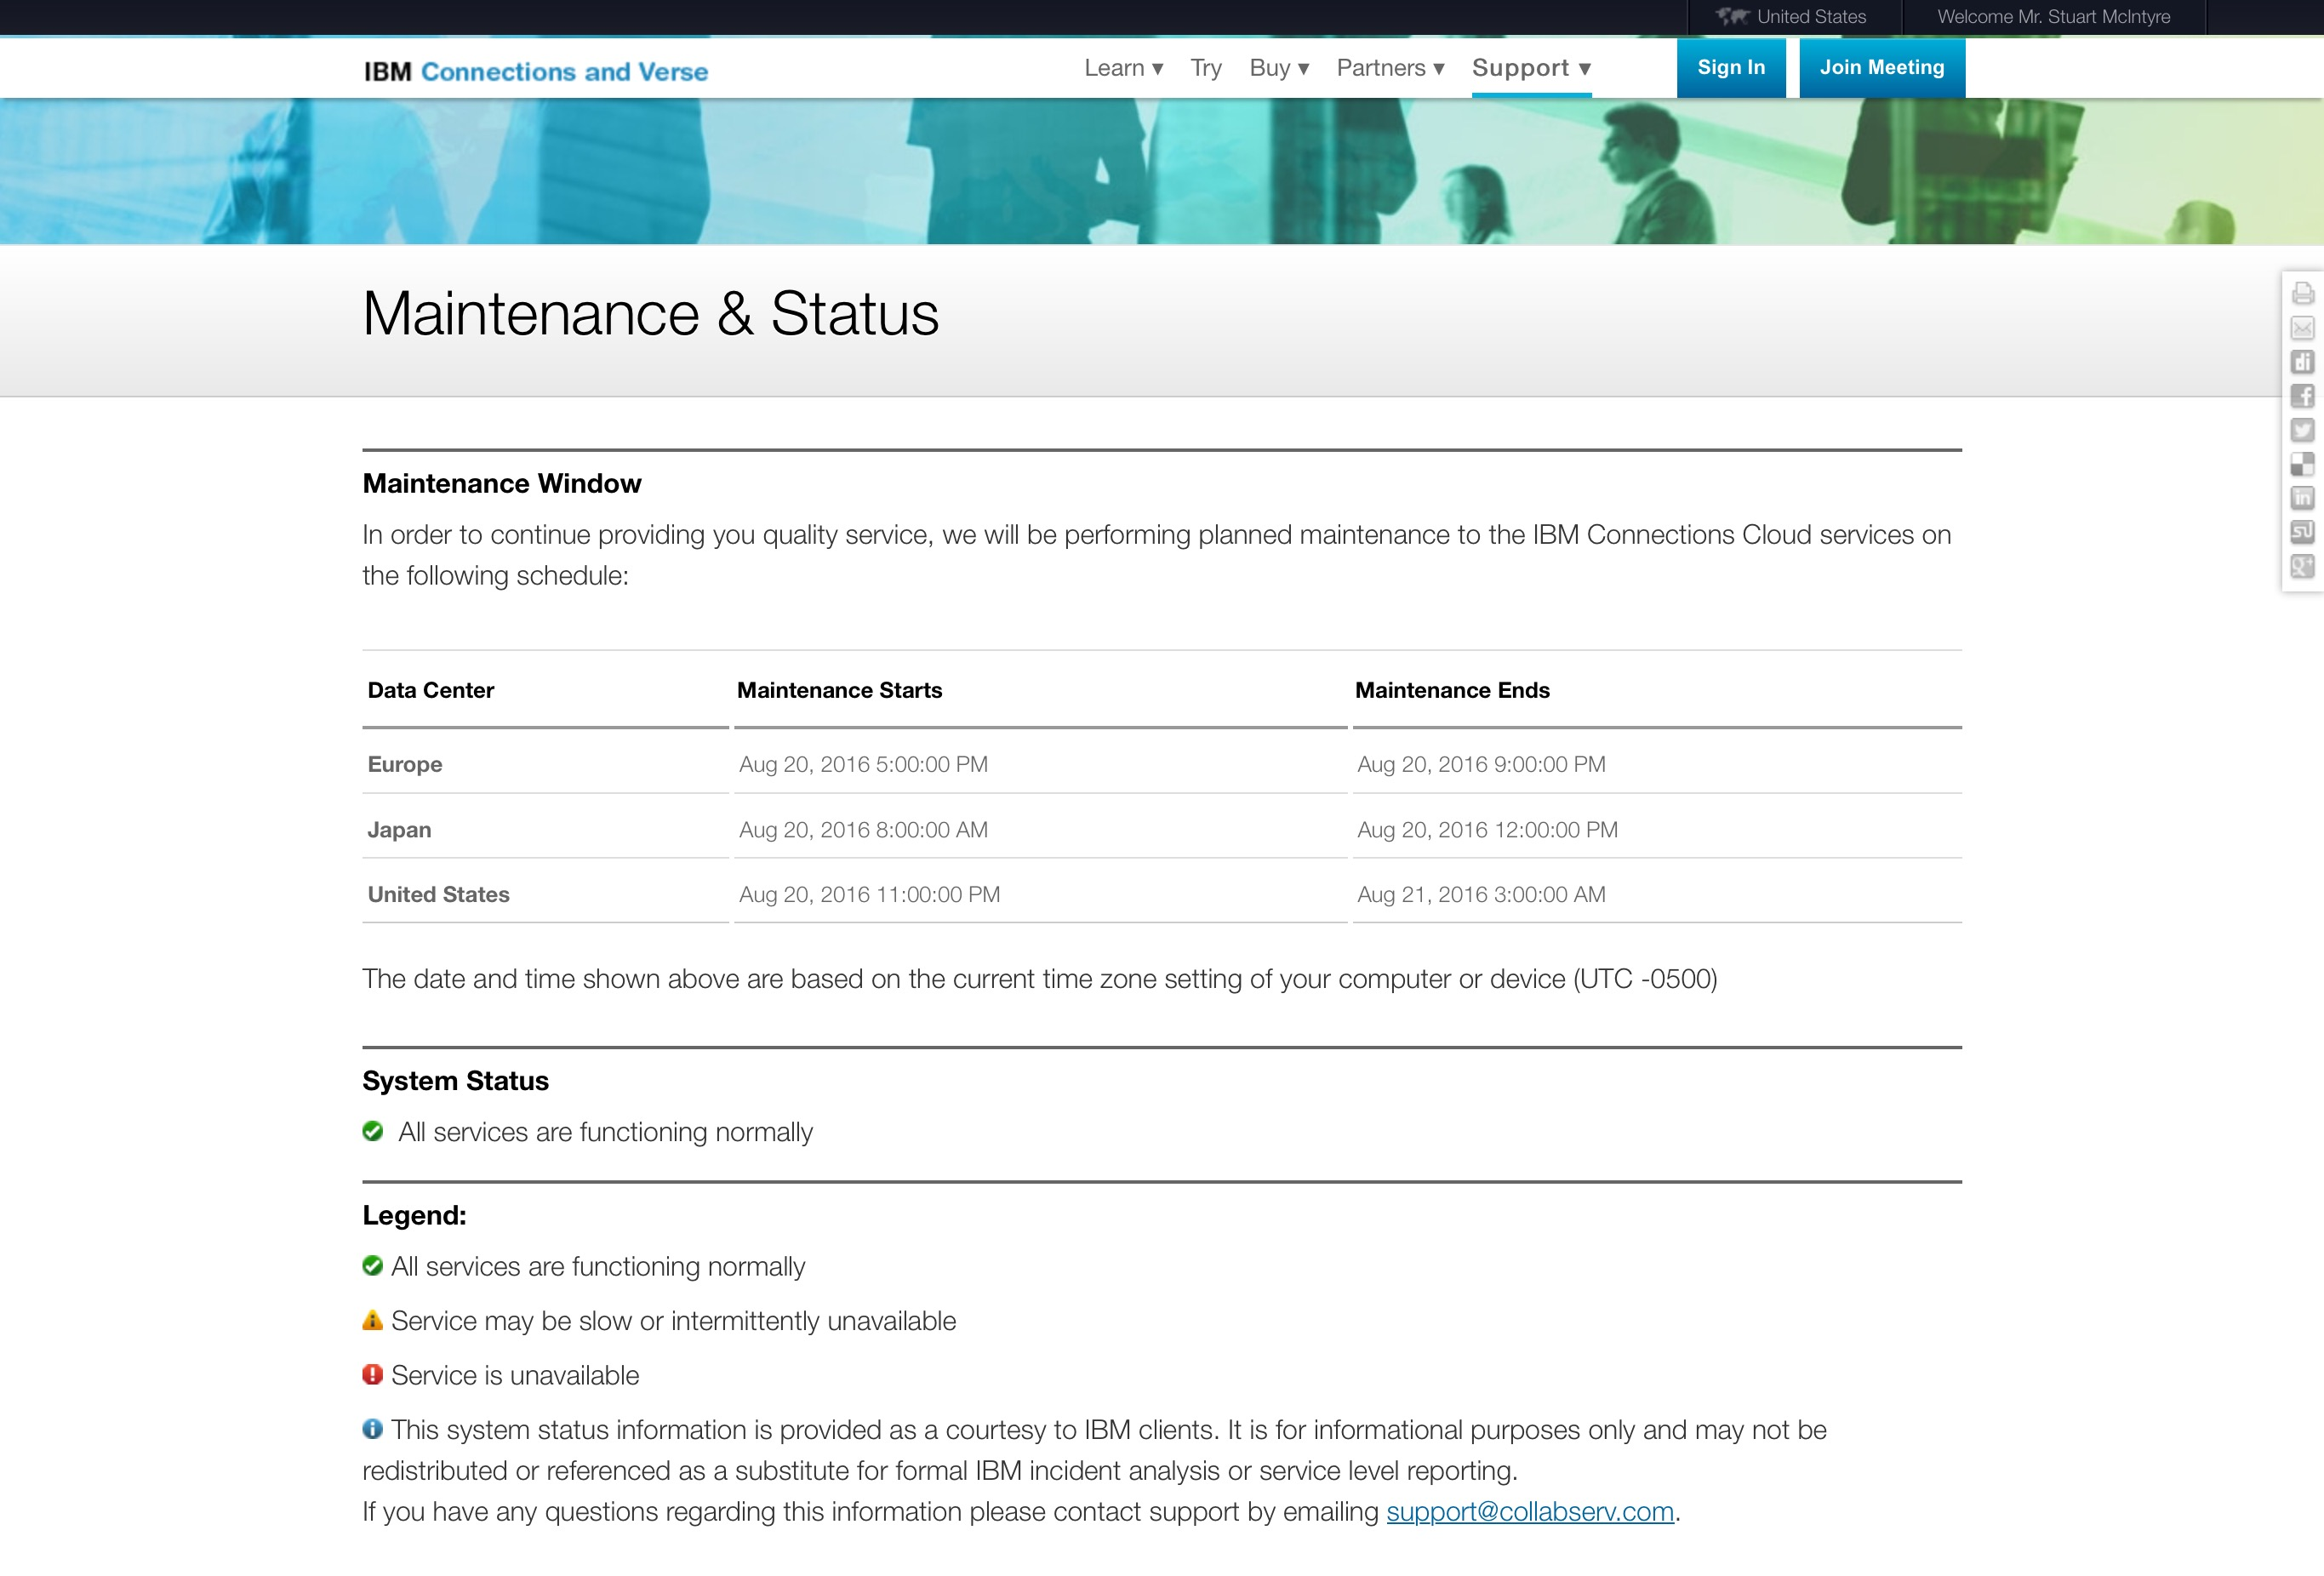 IBM Connections Cloud maintenance screenshot